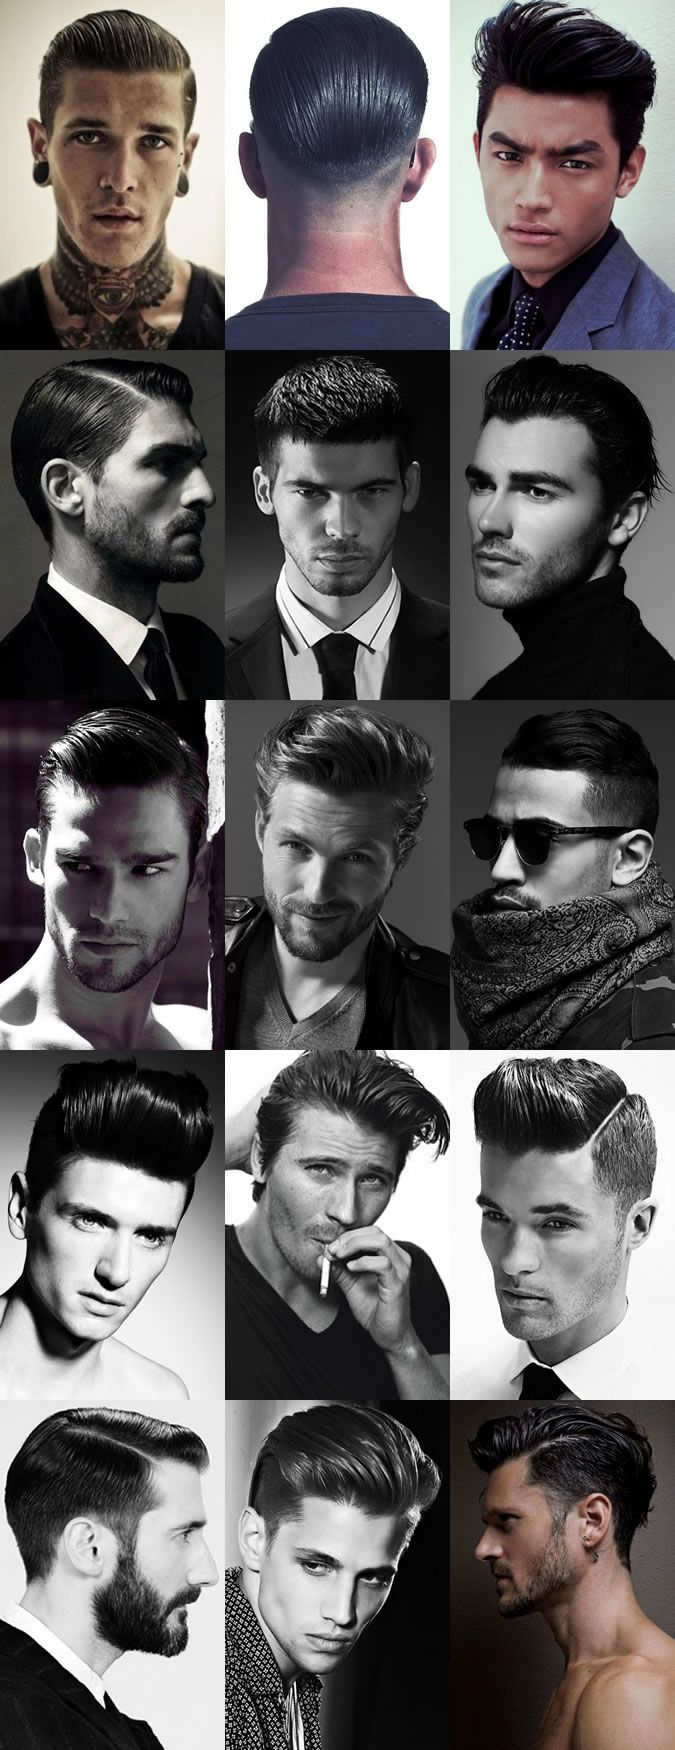 Types of haircuts for men menus sheen high shine and wet look hairstyles  hair  pinterest